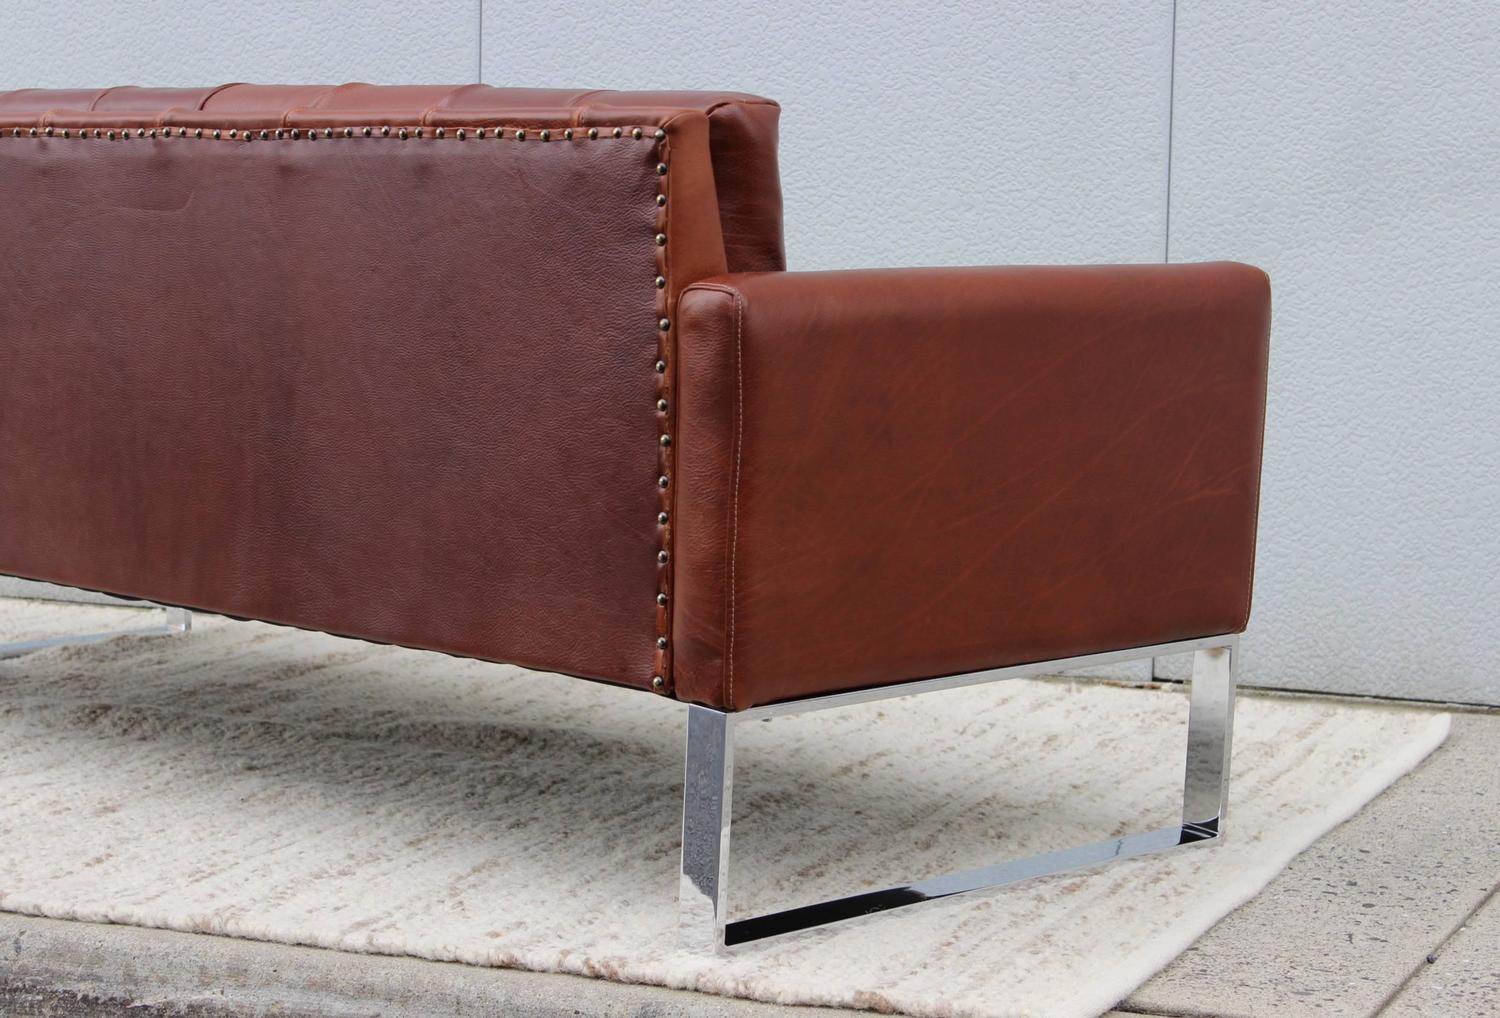 patrician furniture chrome and leather sofa at 1stdibs